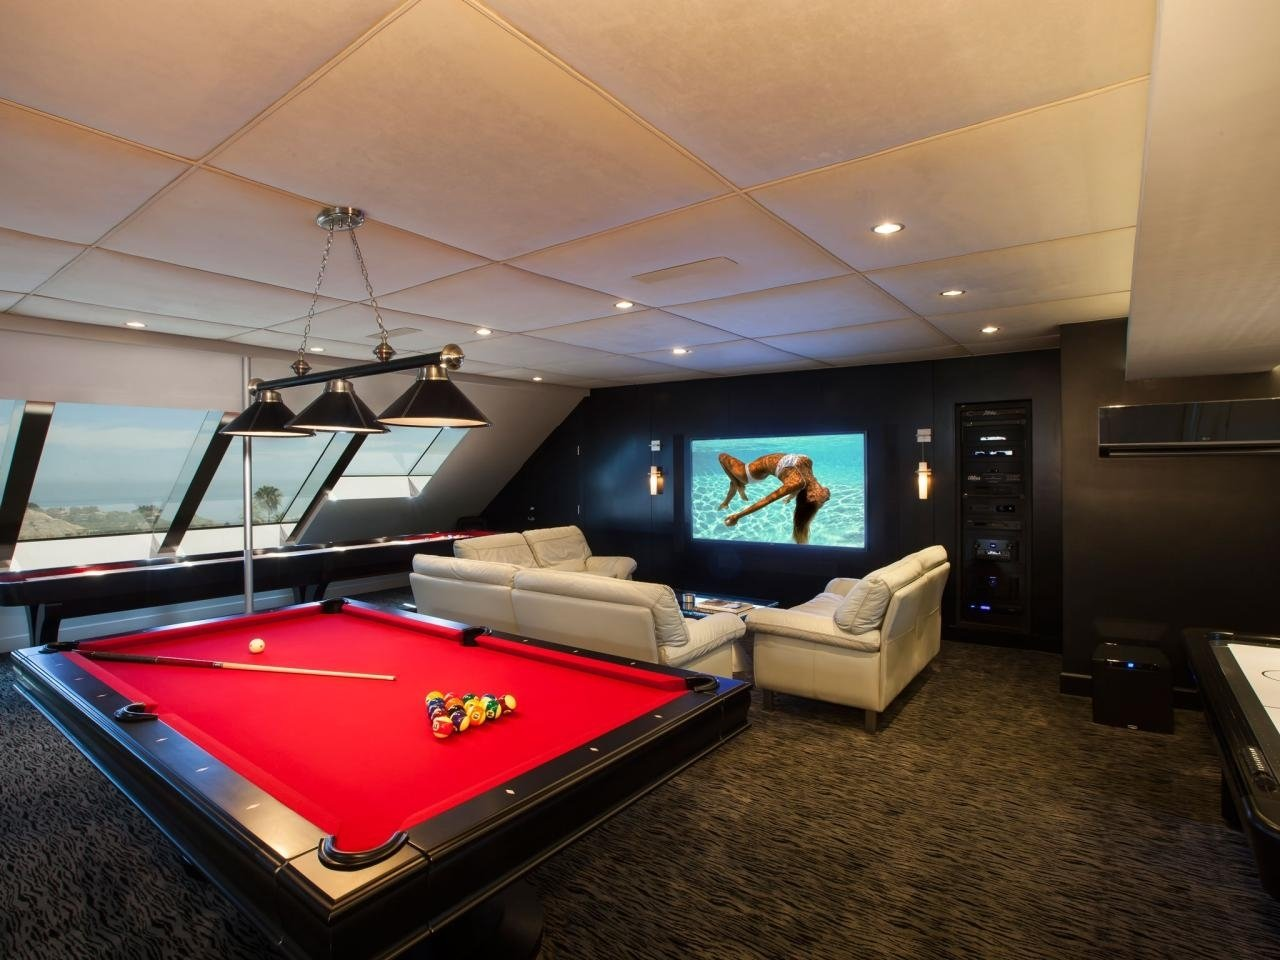 10 Perfect Game Room Ideas For Men cozy man cave bedroom 29 man cave bedroom designs must have items a 2020